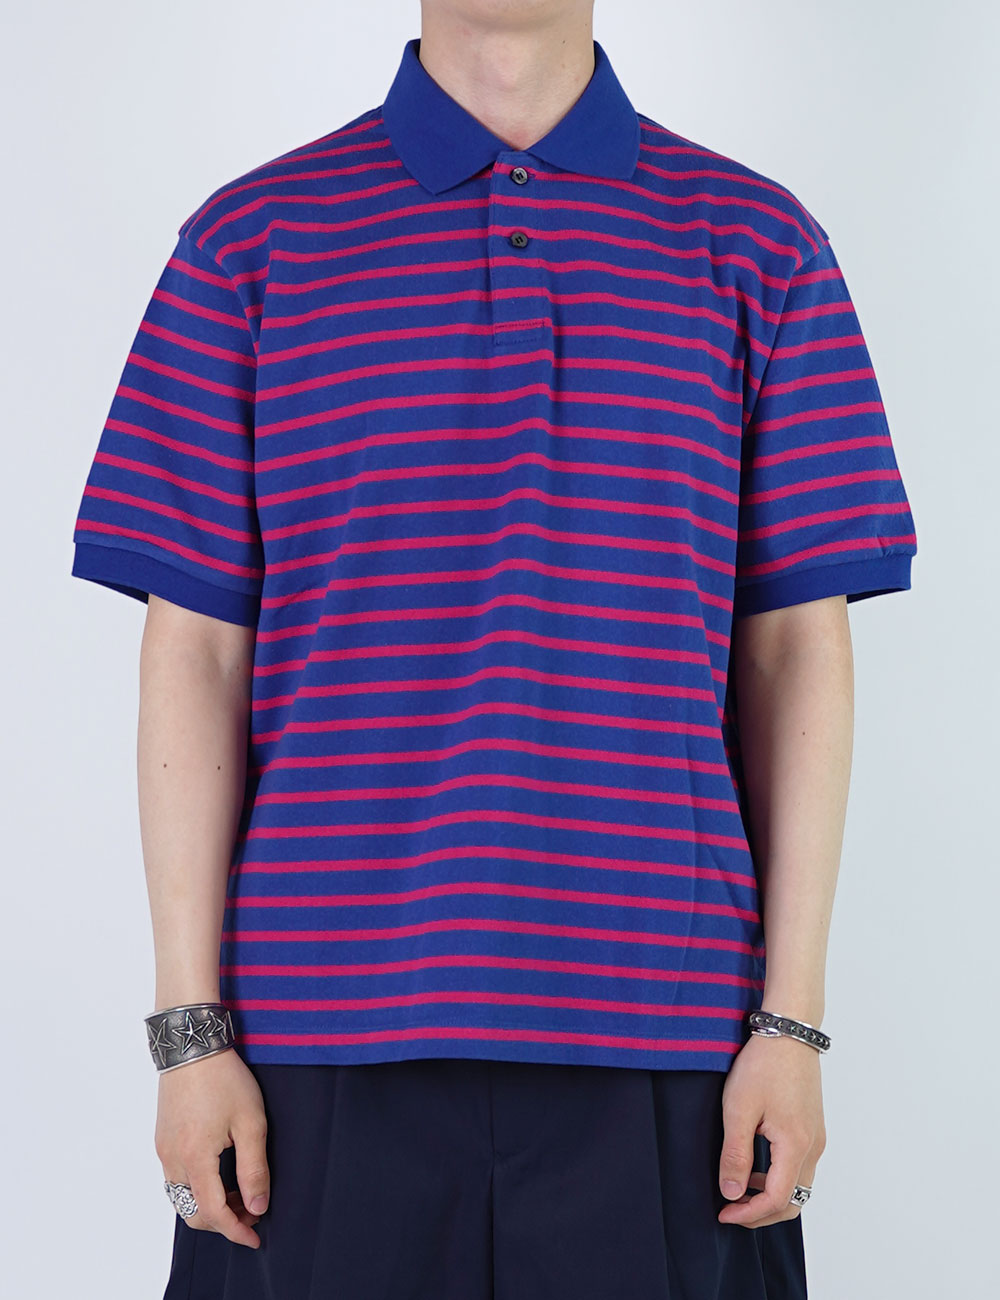 URU : COTTON BORDER POLO SHIRTS (BLUE/RED)